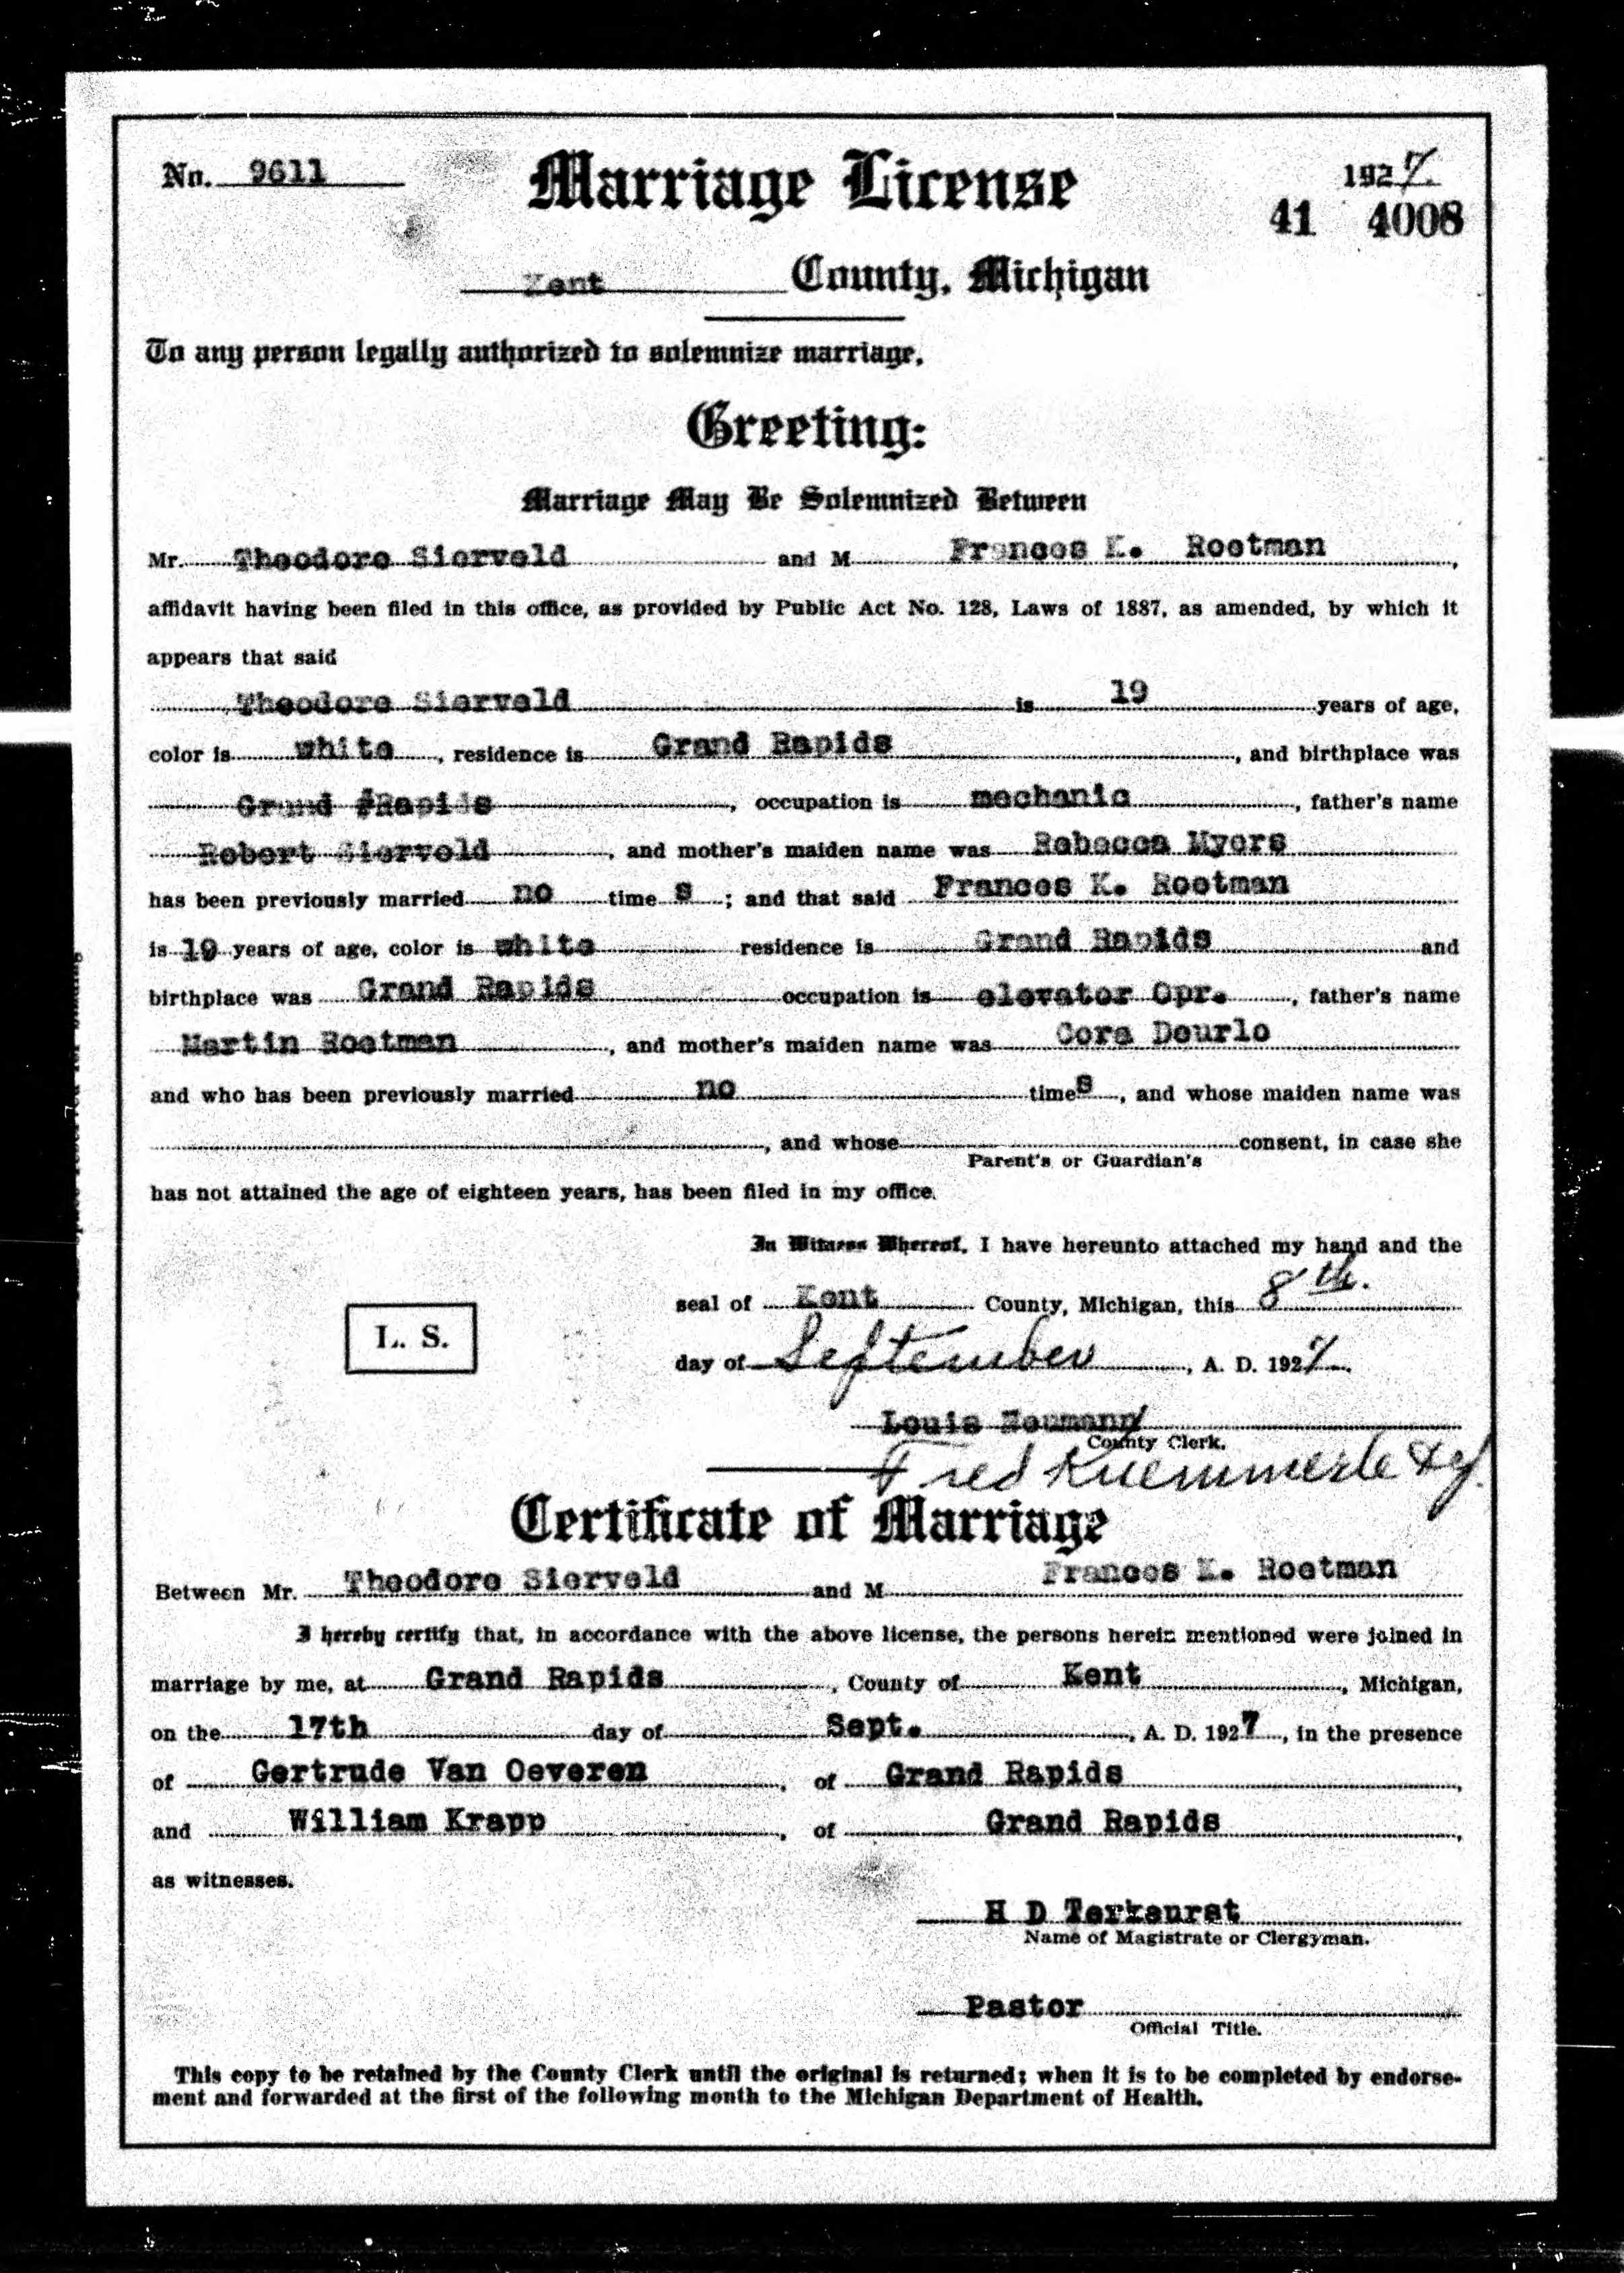 Frances Catherine Roetman marriage